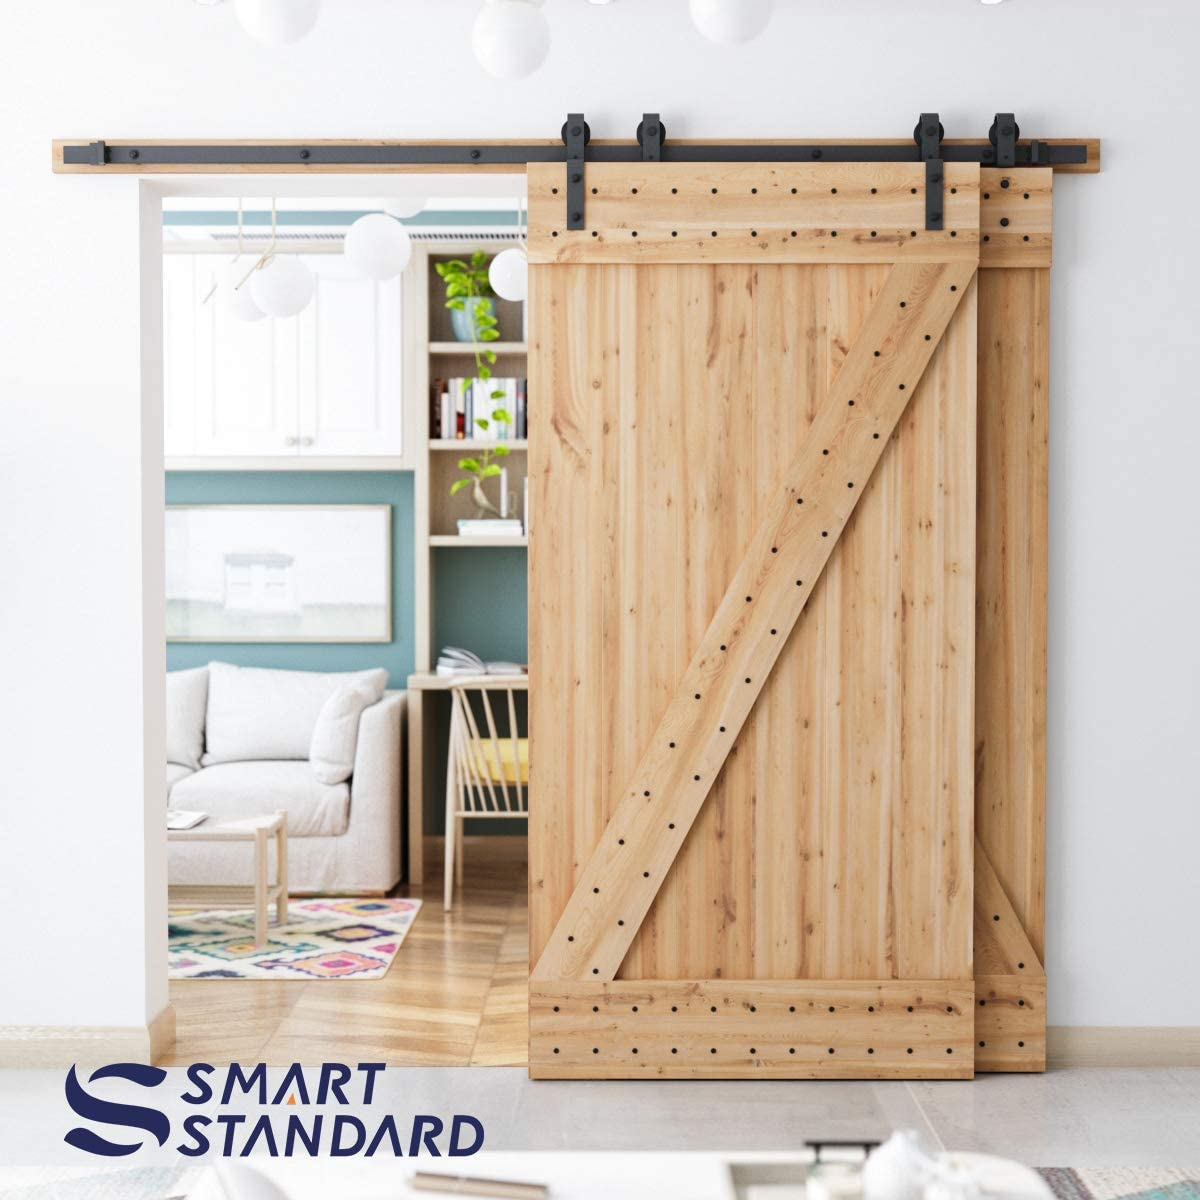 SMARTSTANDARD 6.6ft Bypass Sliding Barn Door Hardware Kit Upgraded One-Piece Flat Track for Double Wooden Doors Easy to Install -Fit 36-40 Wide Door Panel J Shape Hanger Smoothly /&Quietly